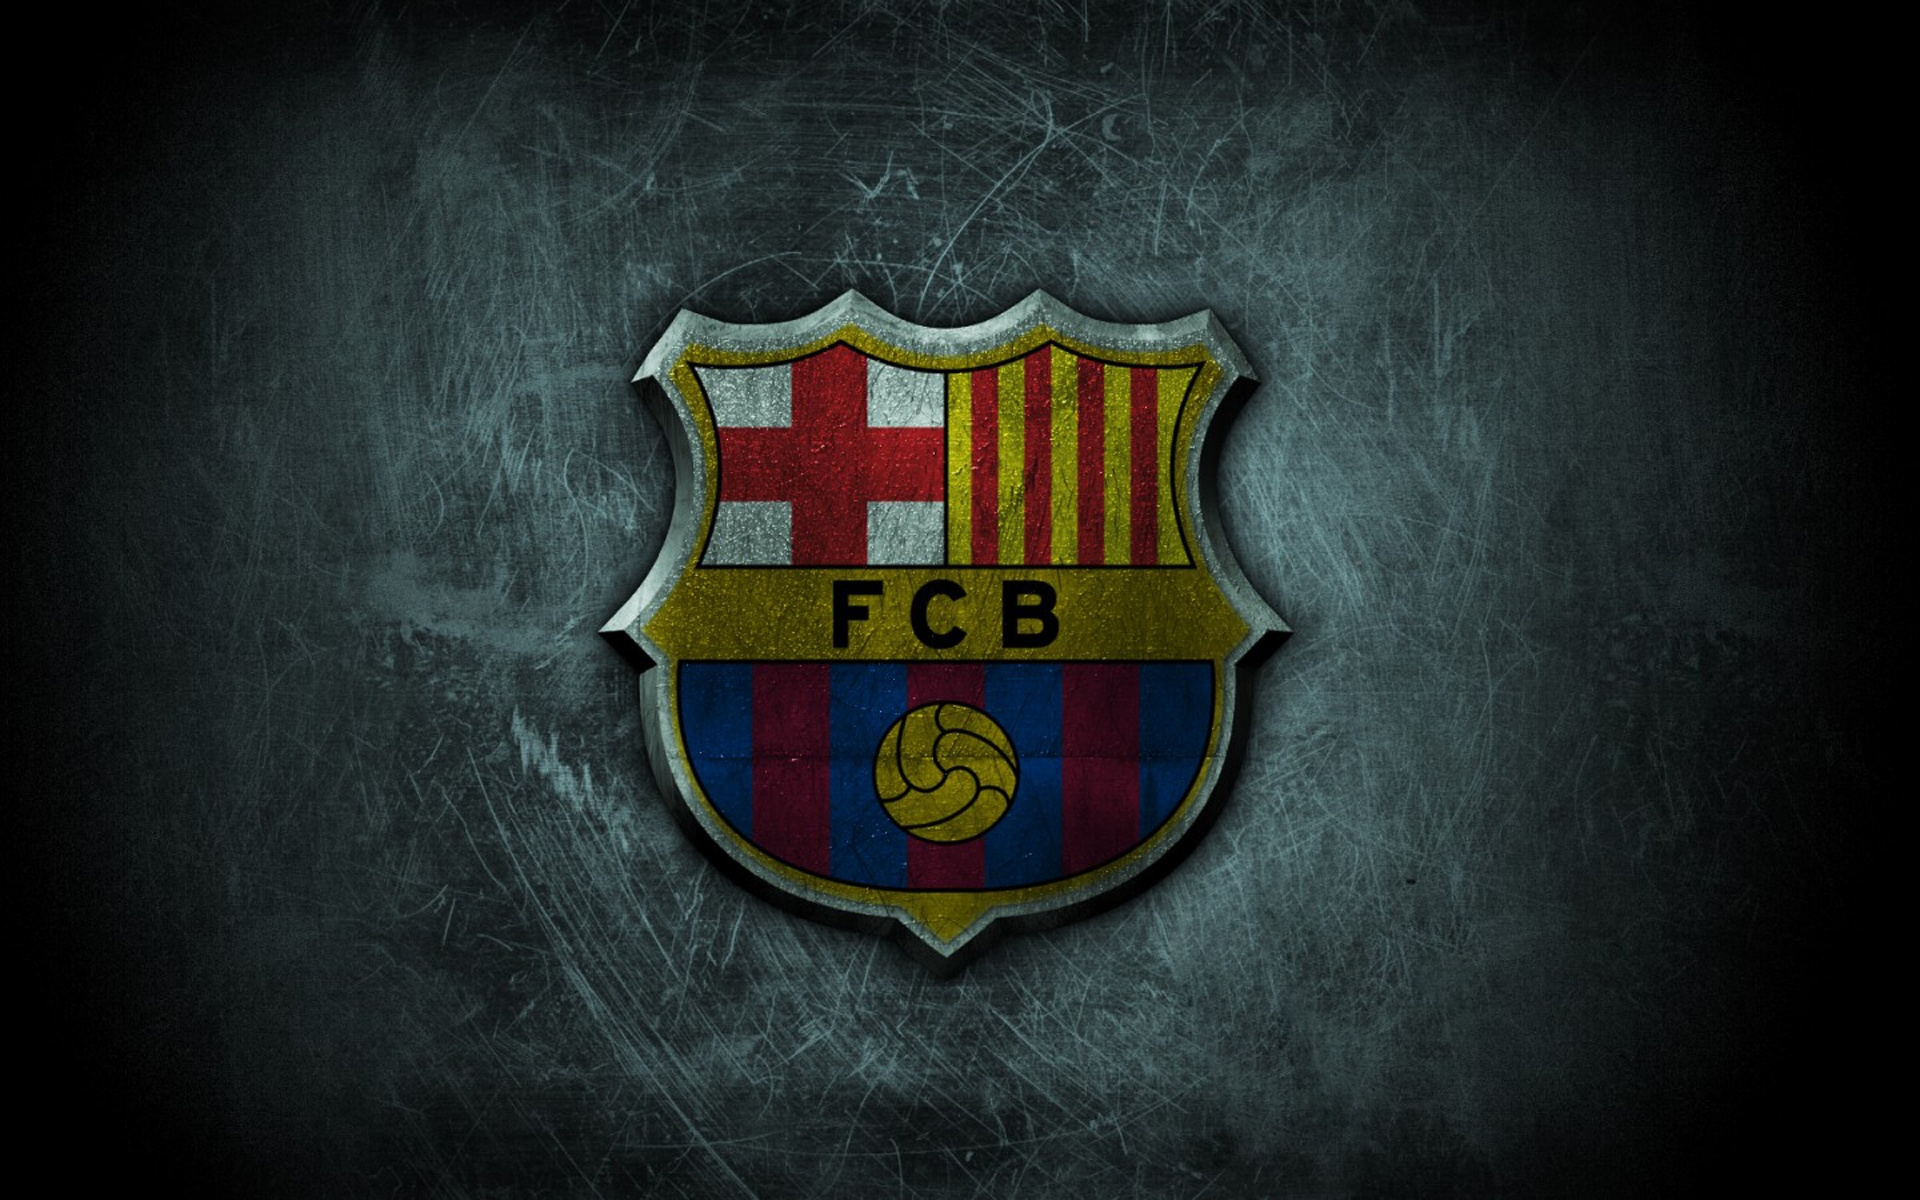 Free Download Cool Football Iphone Wallpapers Wallpaper Hd Escudo Fc Barcelona En 1920x1200 For Your Desktop Mobile Tablet Explore 45 Cool Soccer Wallpapers For Iphone Best Phone Wallpaper Cool